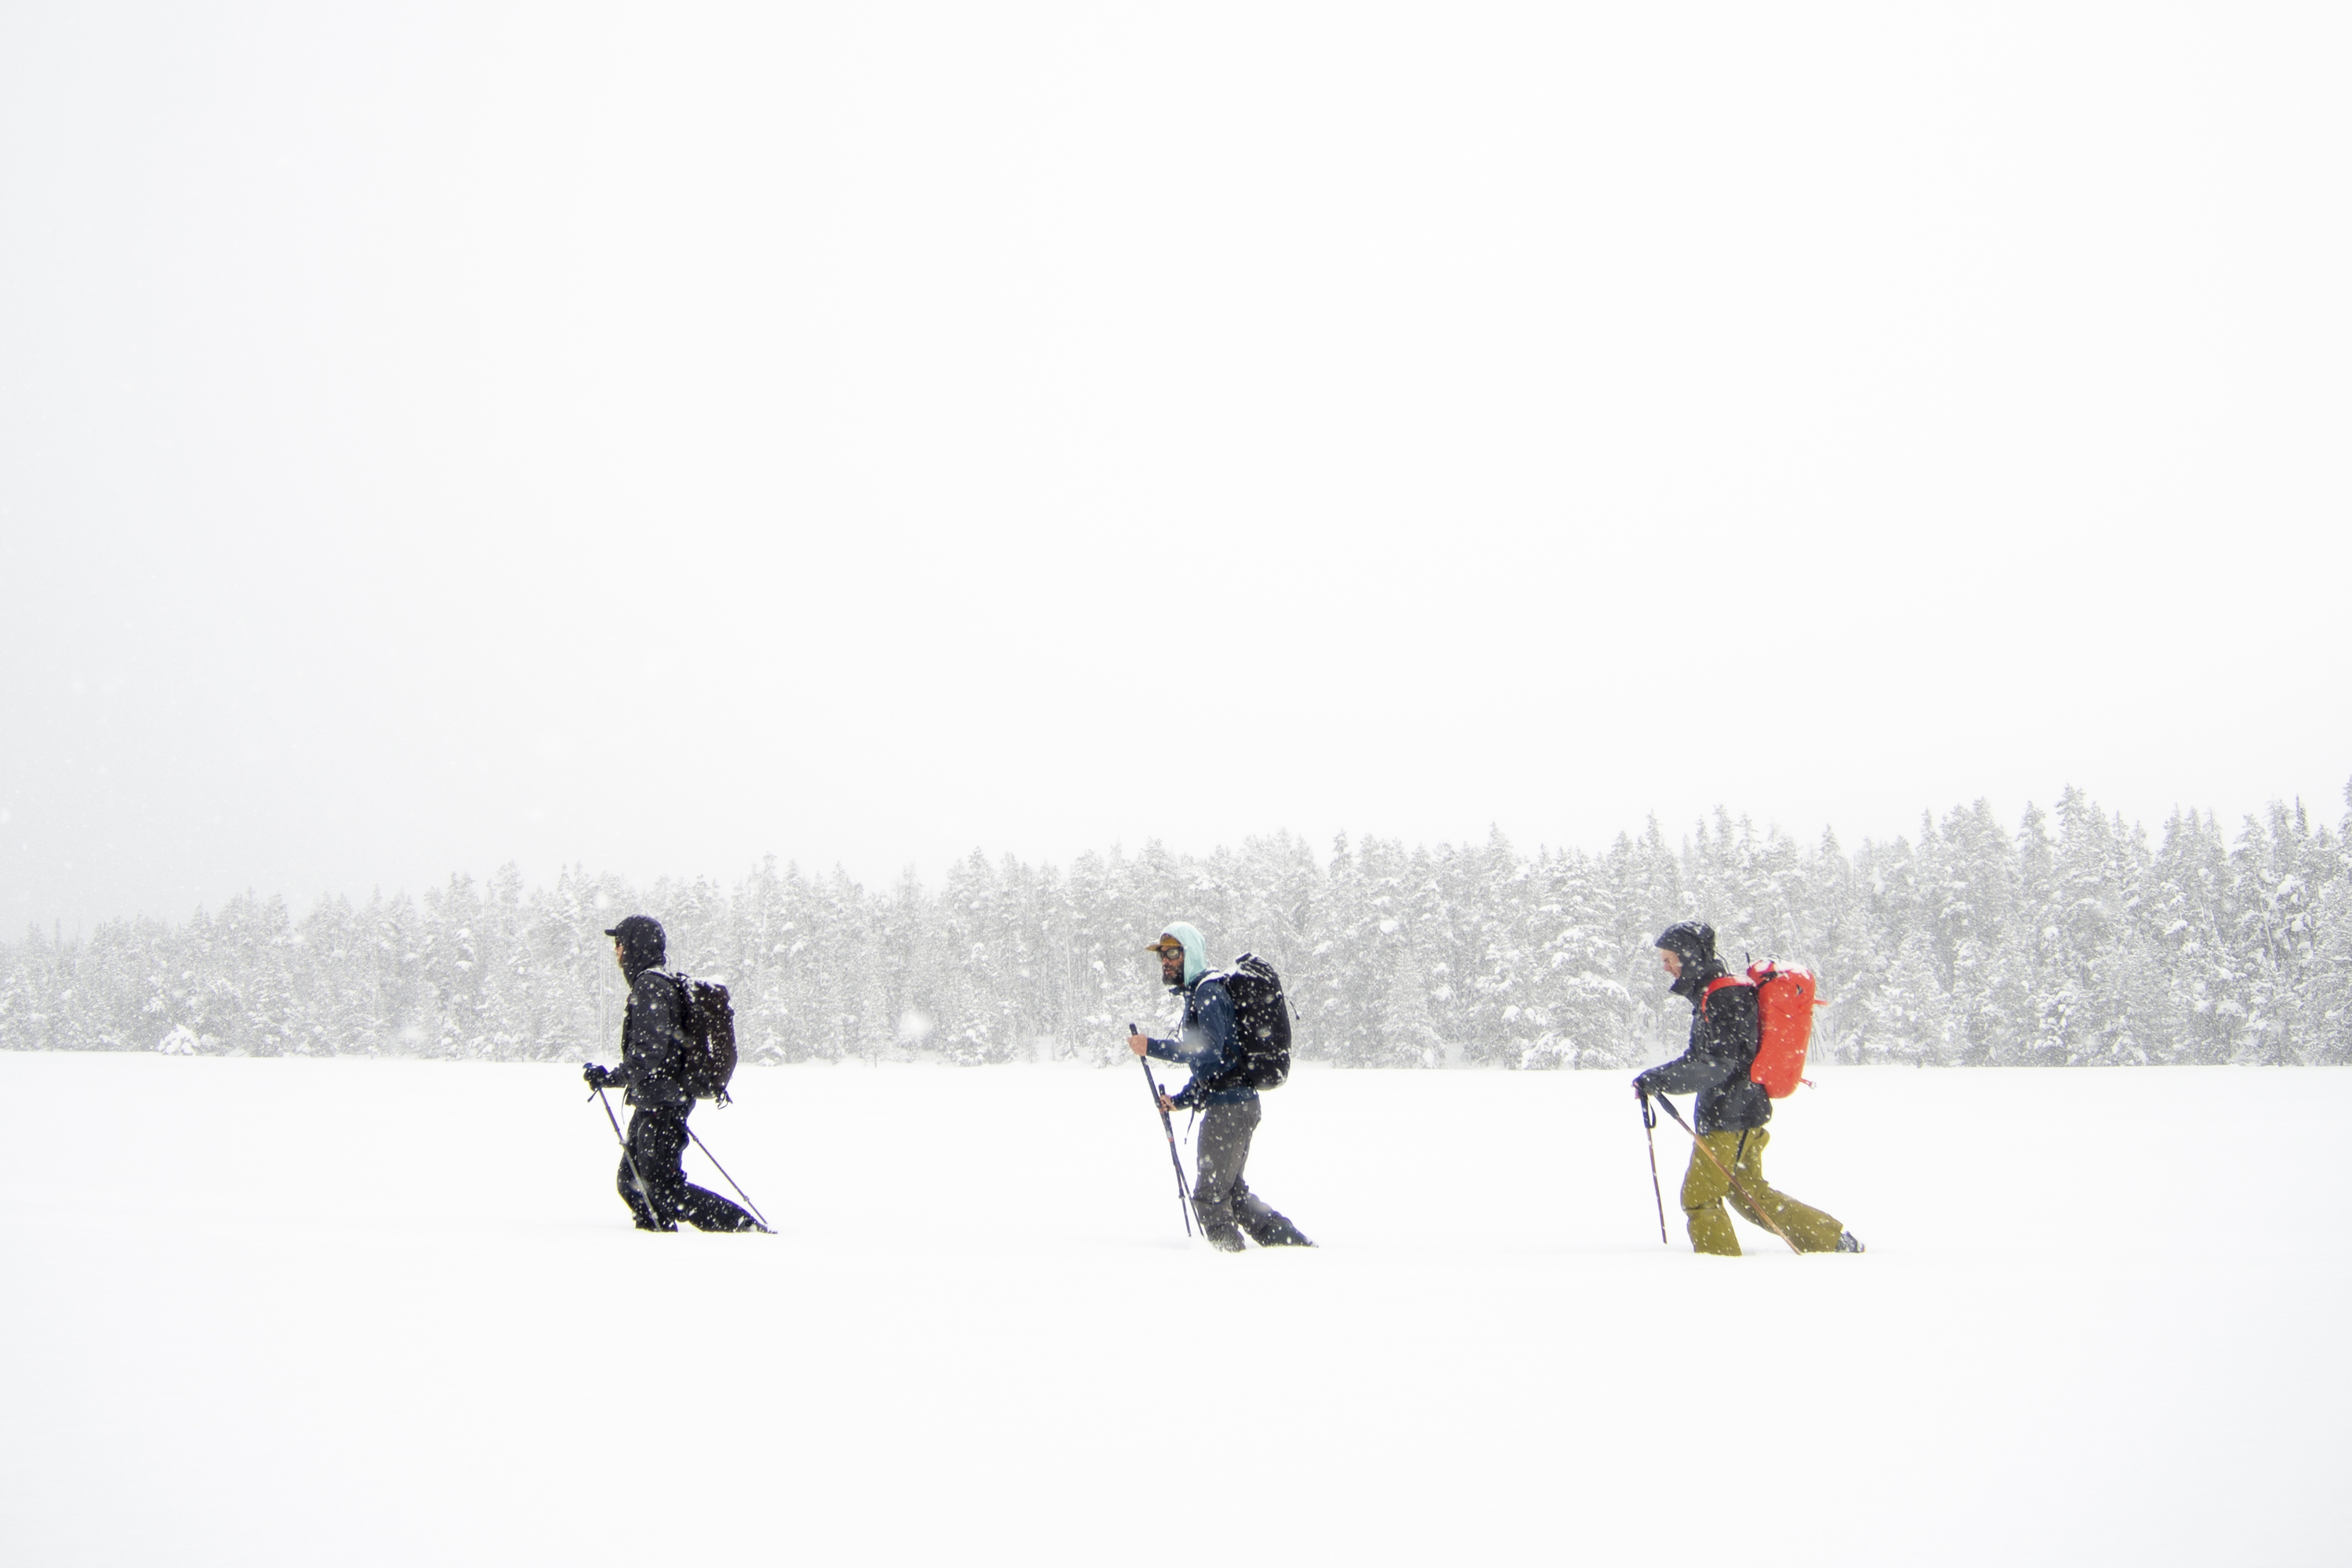 arcteryx academy backcountry ski touring jackson wyoming